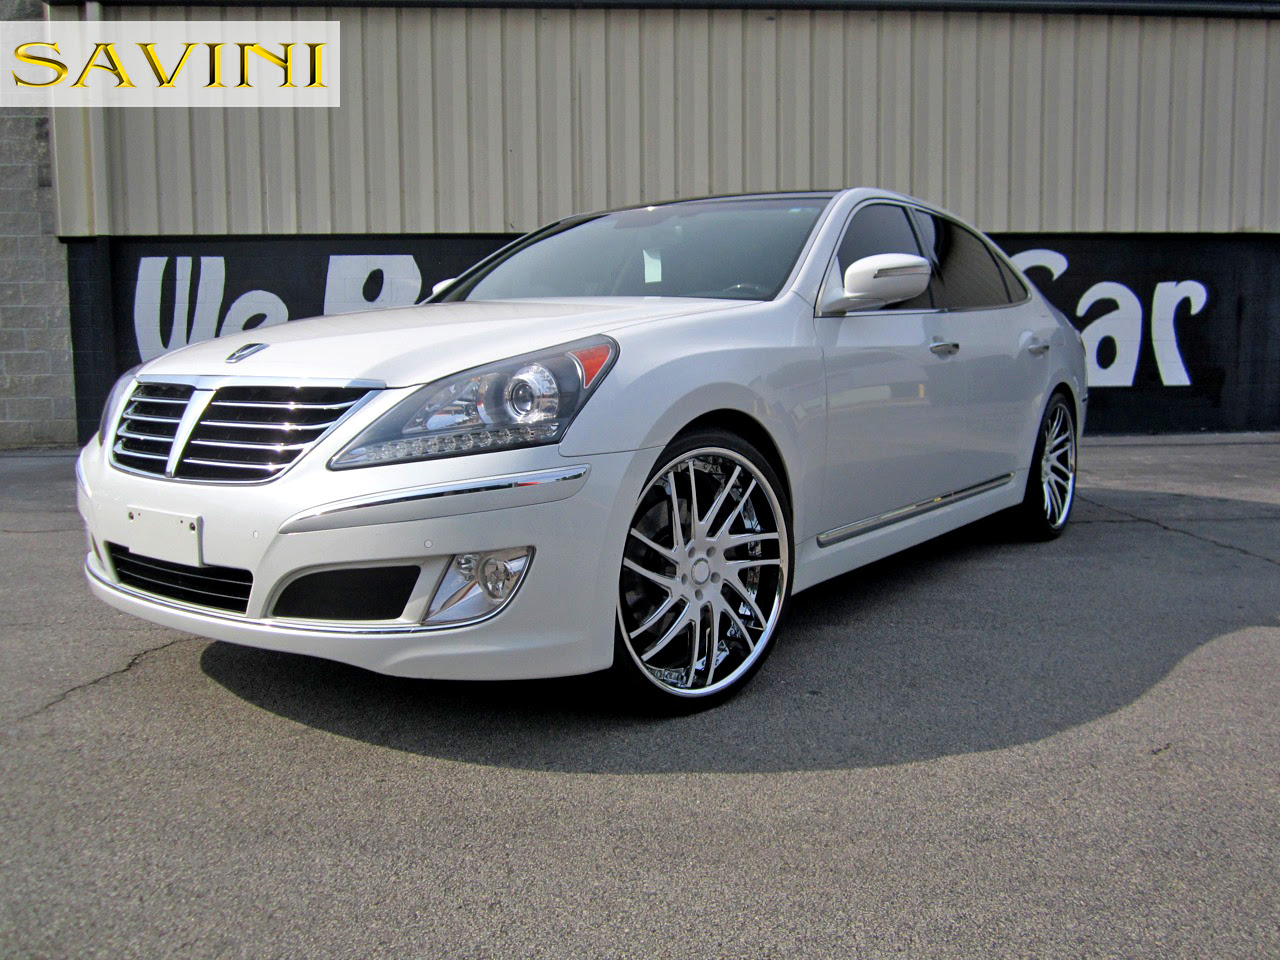 Hyundai Equus On Savini Wheels By Butler Tire Rides Magazine